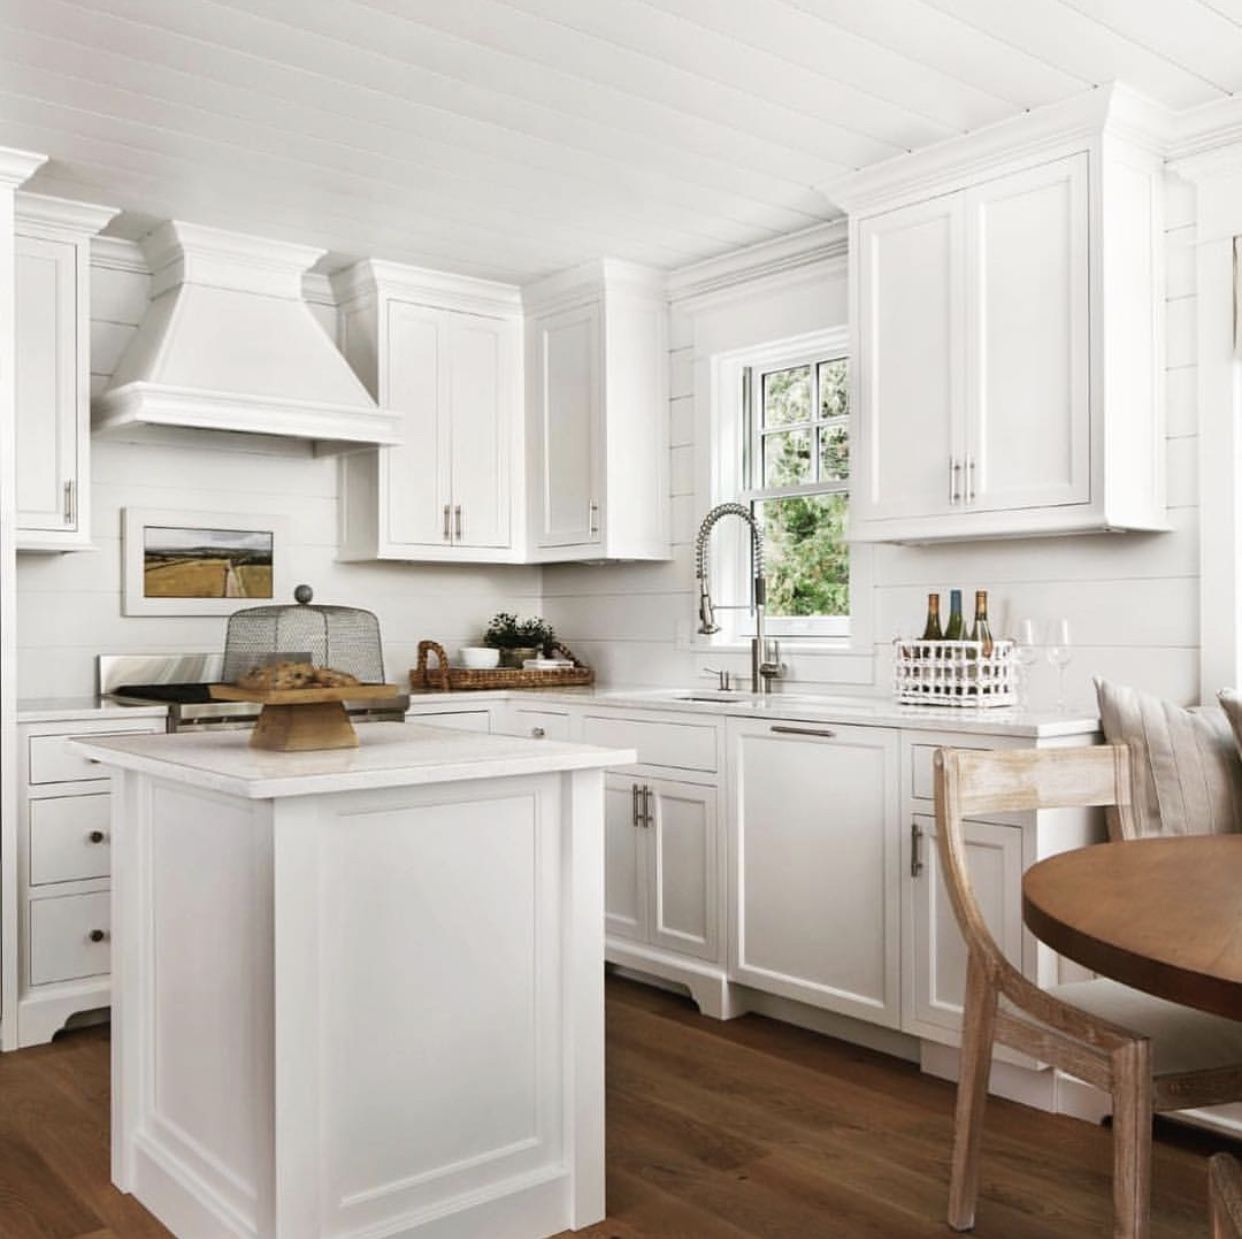 Crown Molding In Kitchens: Kitchen, Crown Molding